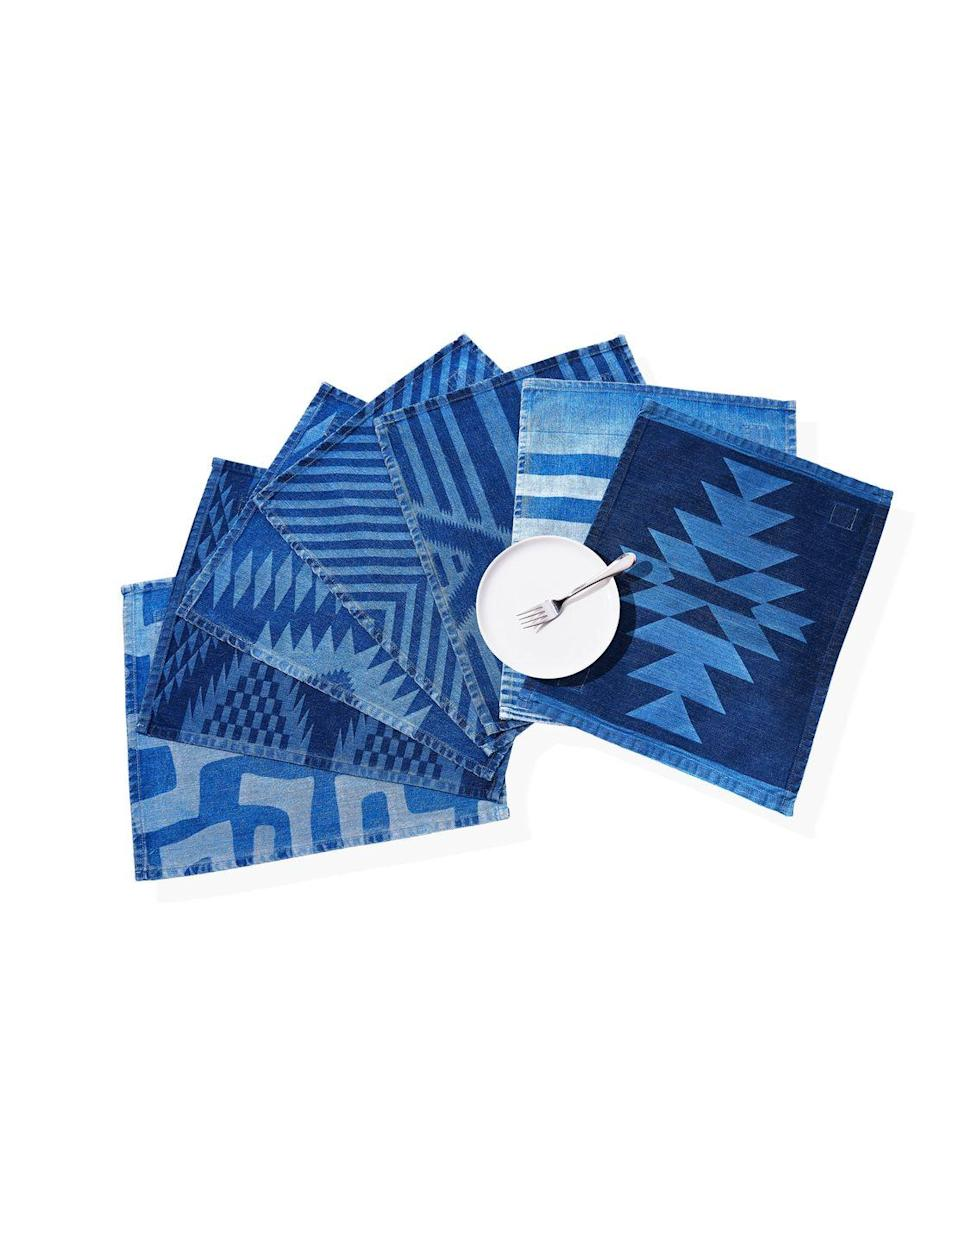 """<p><strong>Mi Cocina</strong></p><p>$20 Each</p><p><a class=""""link rapid-noclick-resp"""" href=""""https://micocinaus.com/collections/placemats"""" rel=""""nofollow noopener"""" target=""""_blank"""" data-ylk=""""slk:SHOP NOW"""">SHOP NOW</a></p><p><em>Originally $20 each, now 20 percent off with code OPRAH</em></p><p>A designer tabled his fashion career to team with his wife and create denim placemats that are rustic, modern, and manufactured in San Francisco.</p>"""